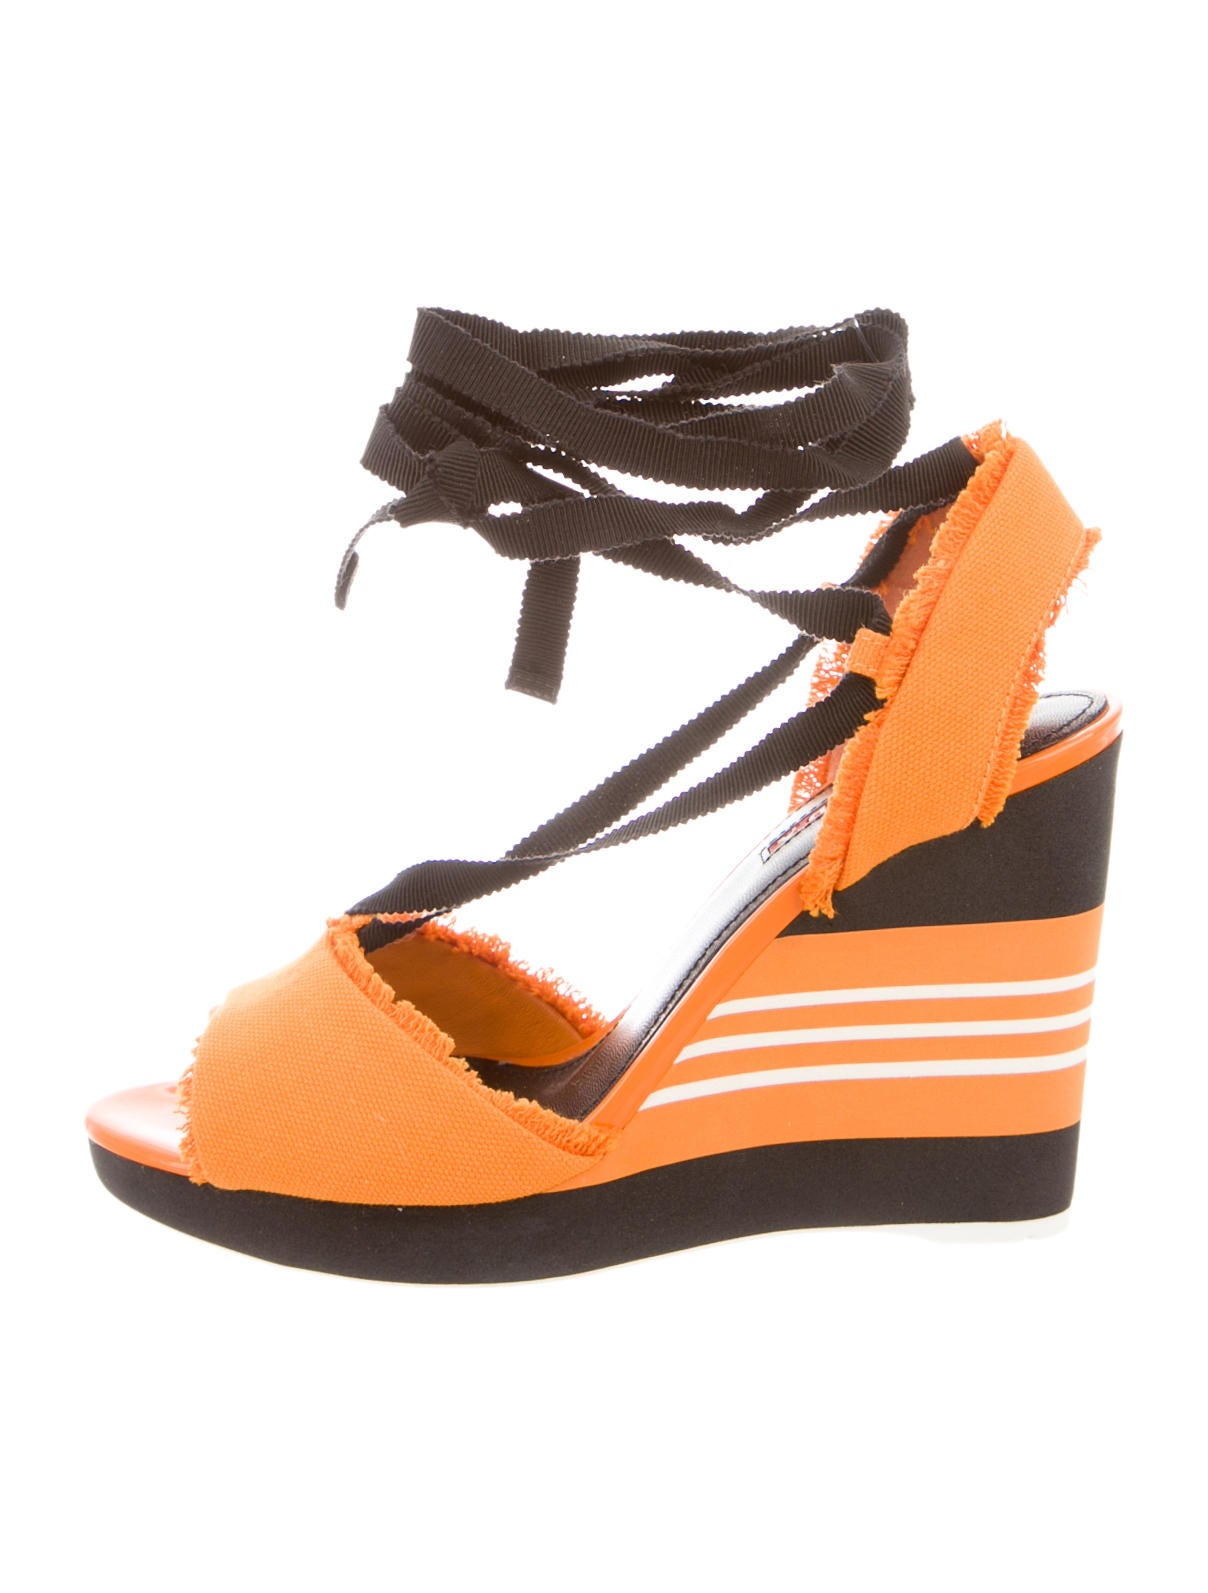 prada sport wedges shoes wpr27869 the realreal